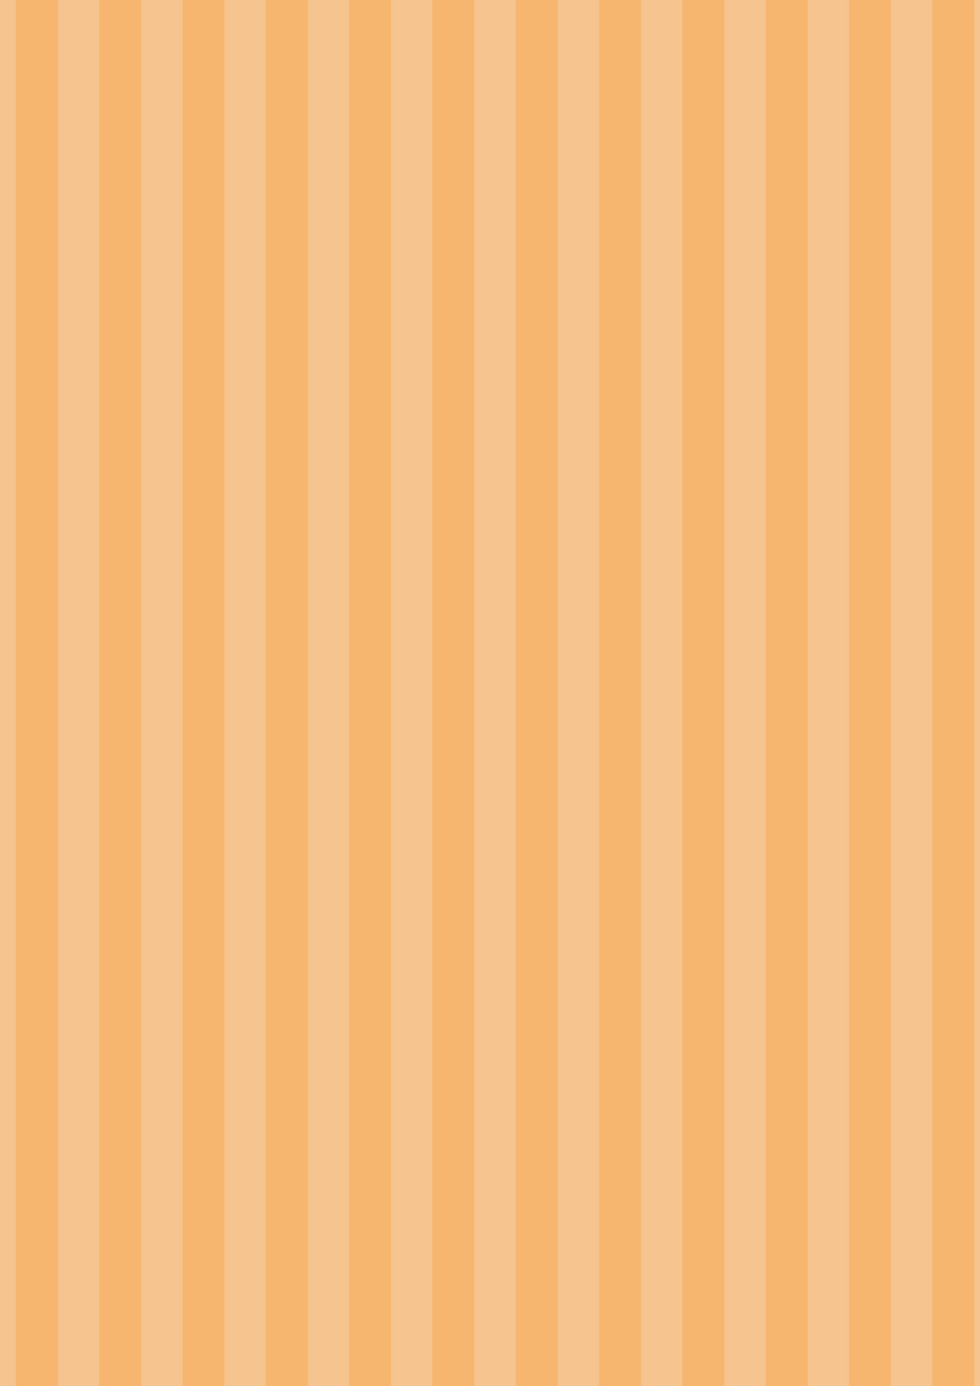 Kinderzimmer_Tapete_A4_orange.png